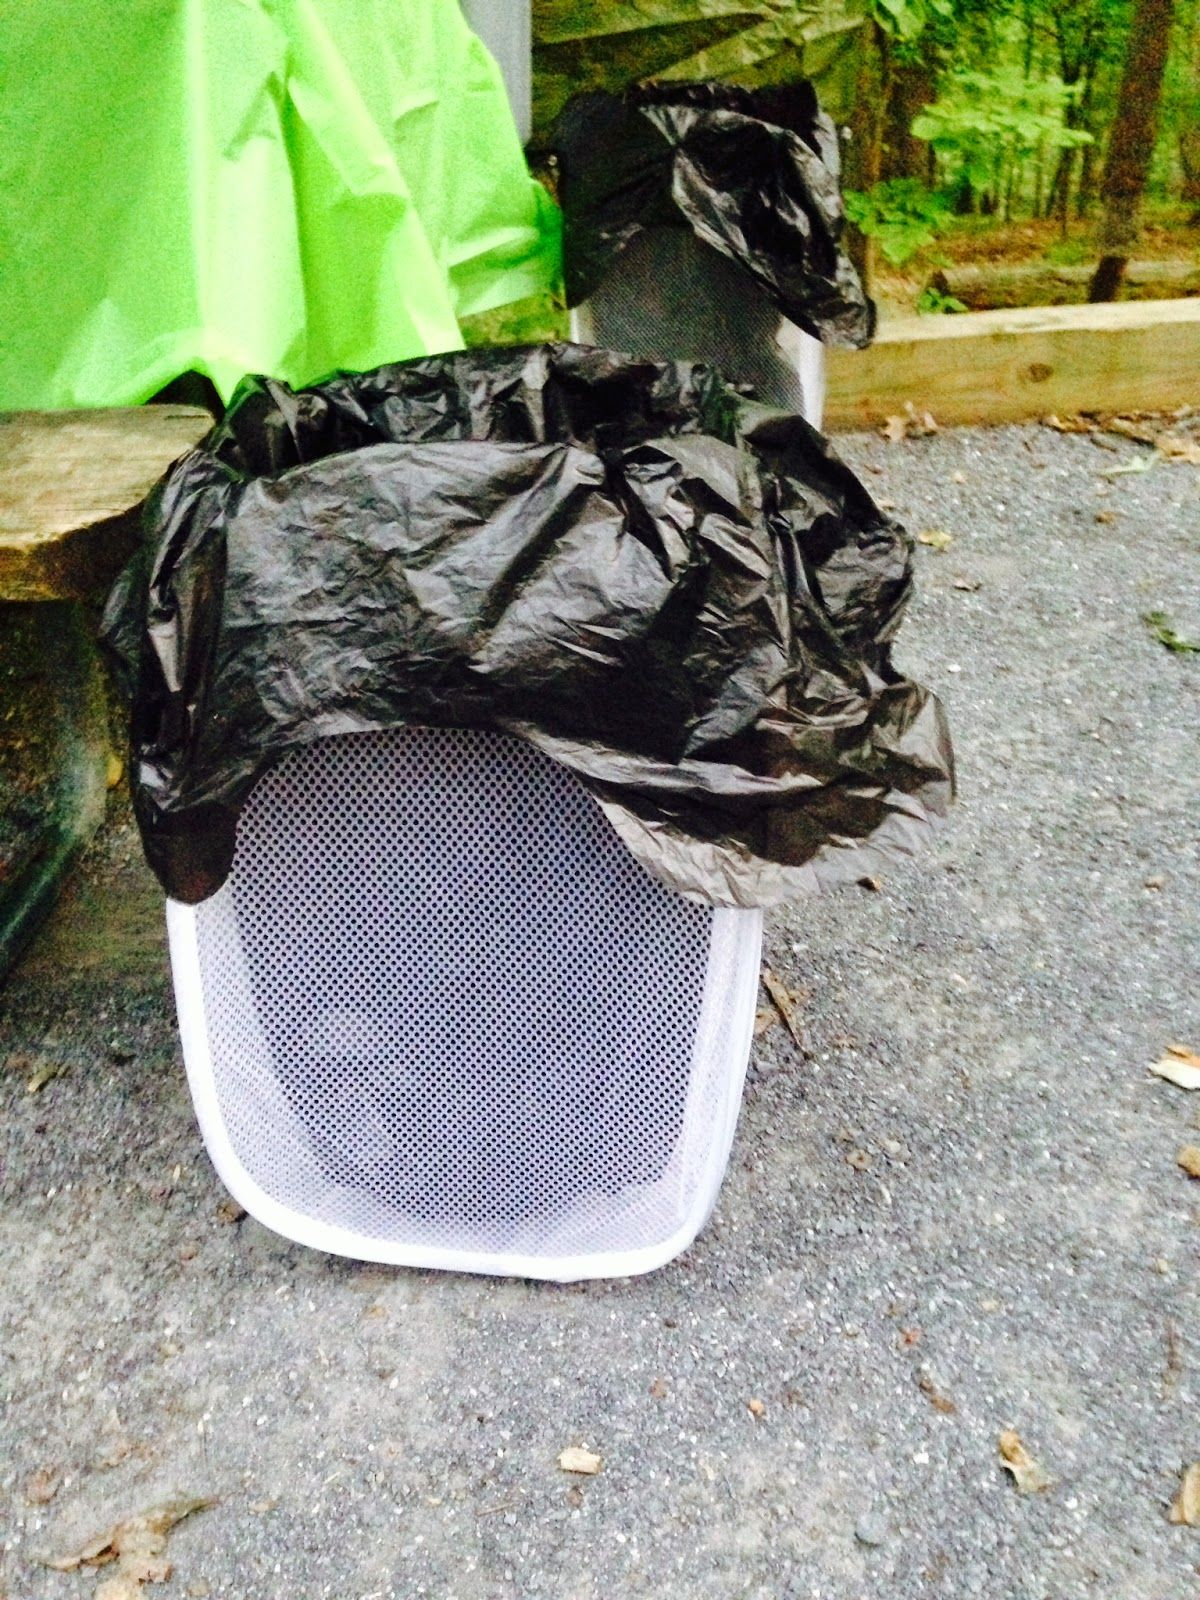 Trash can solution while camping! Compact and costs $1 ...